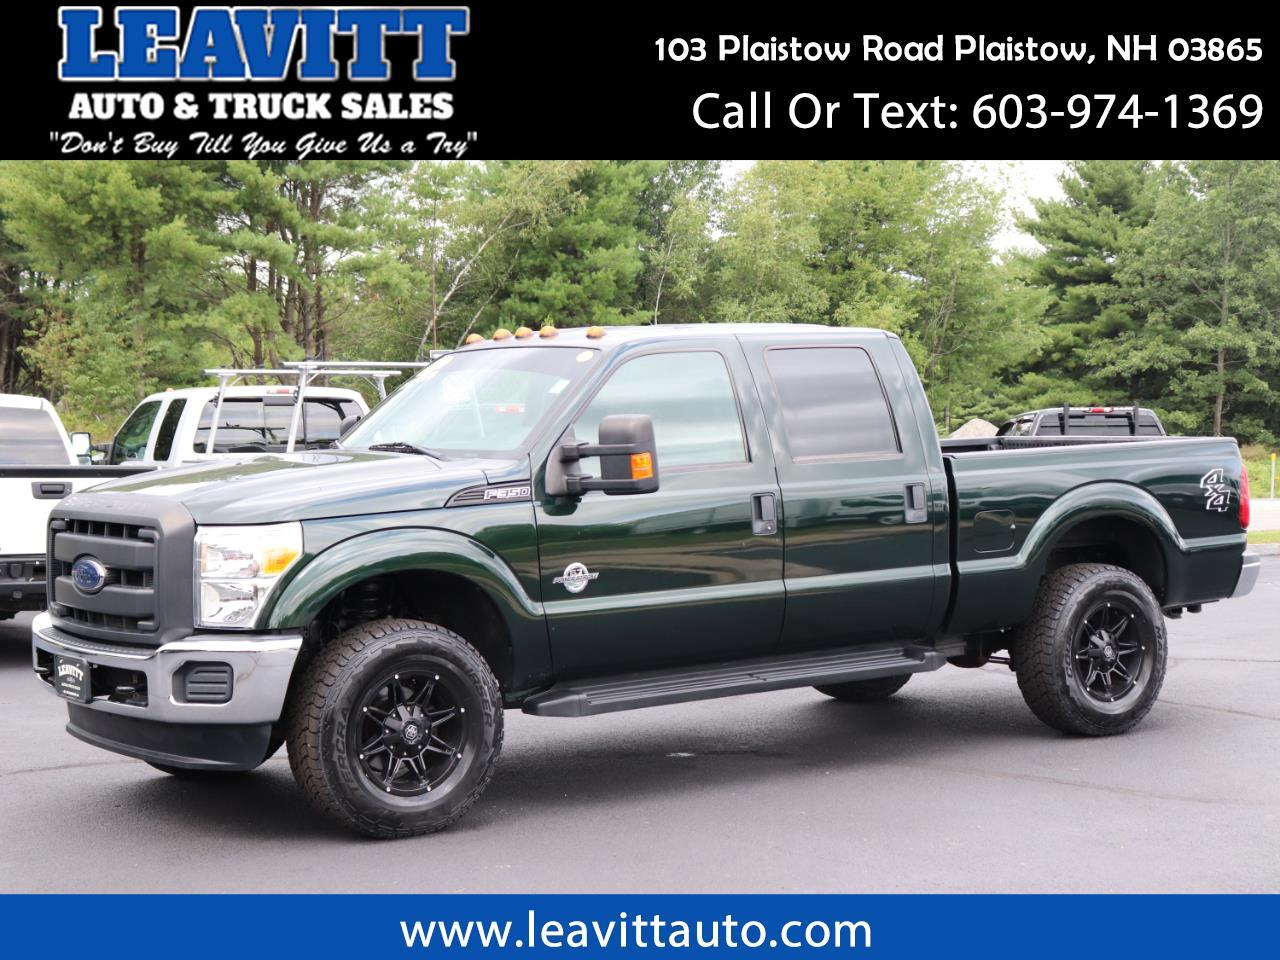 Used Cars Plaistow NH | Used Cars & Trucks NH | Leavitt Auto